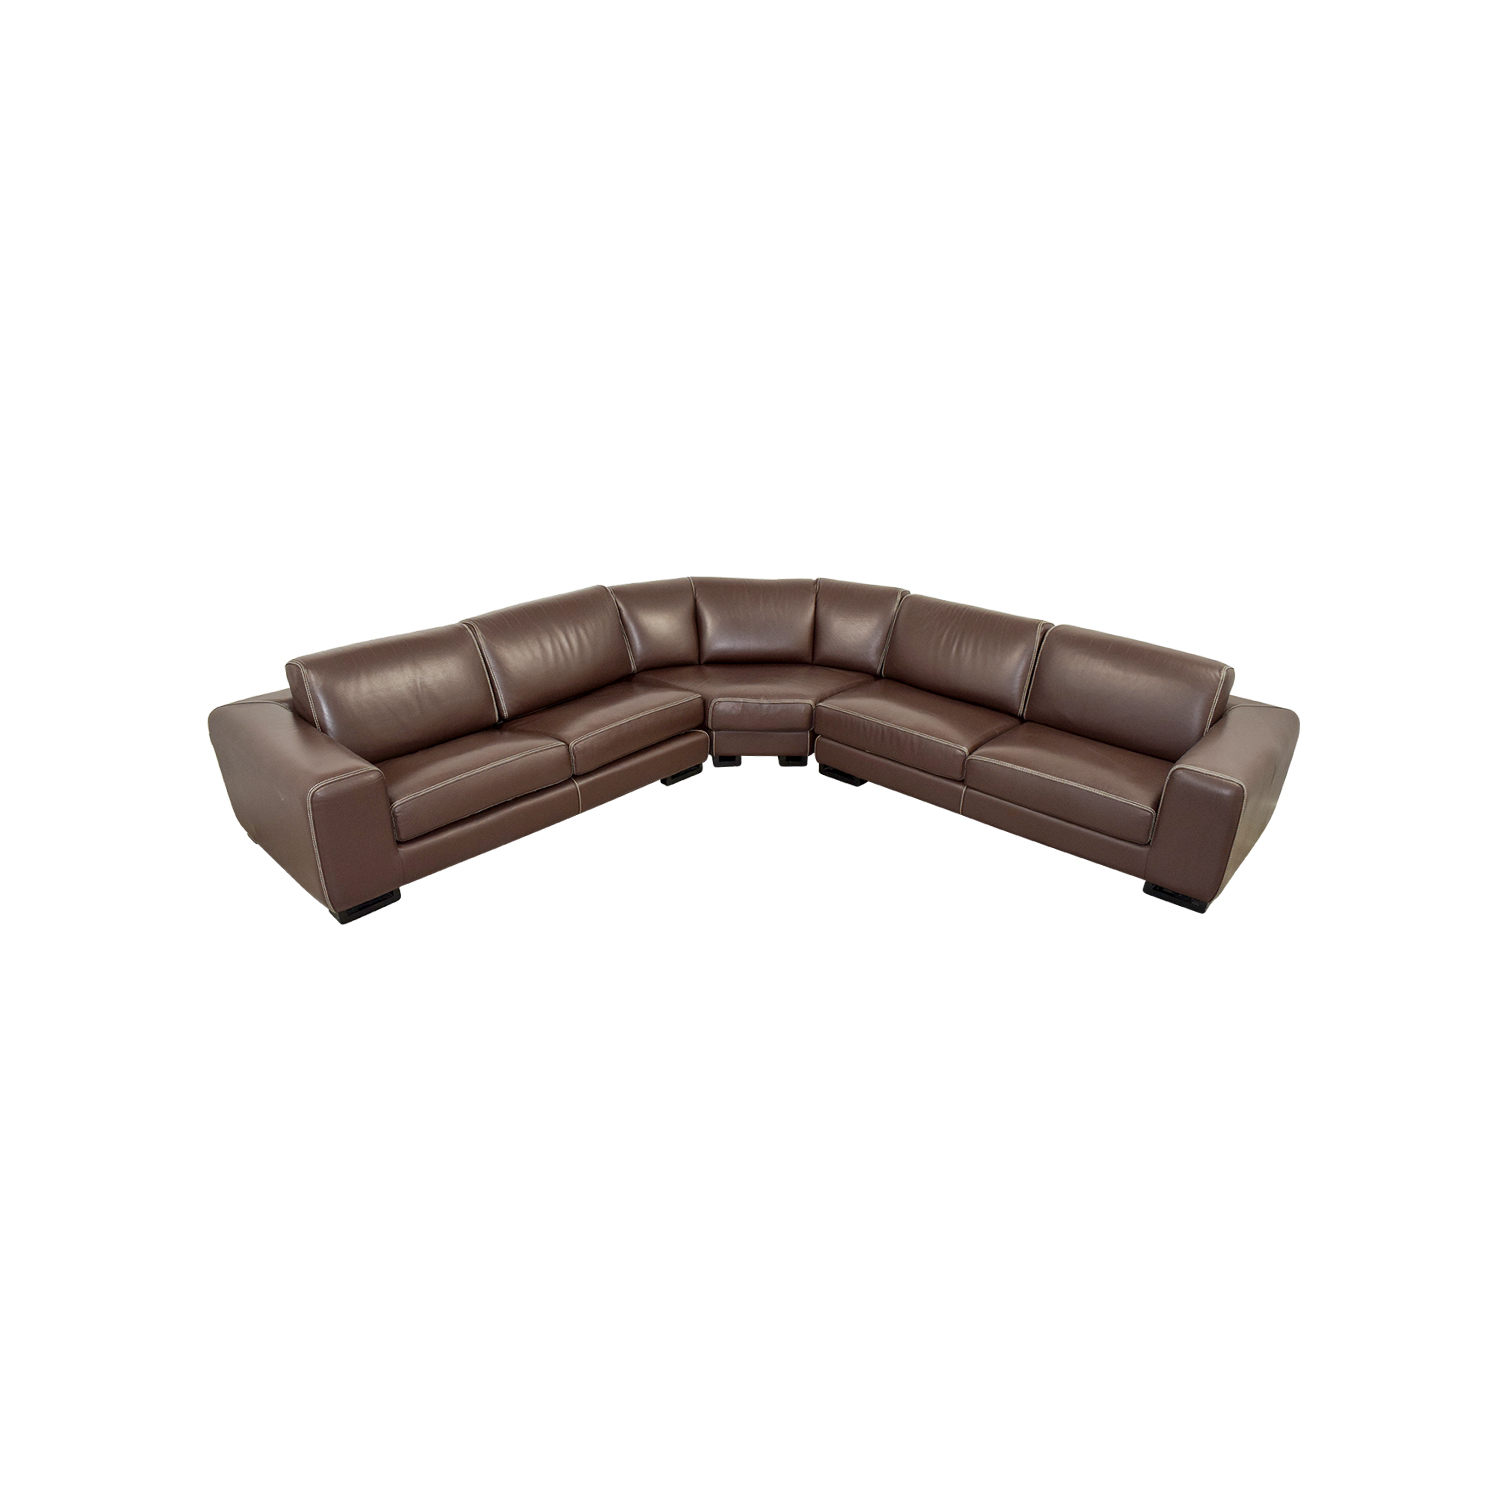 used leather sofa near me sofa for sale sofa used leather